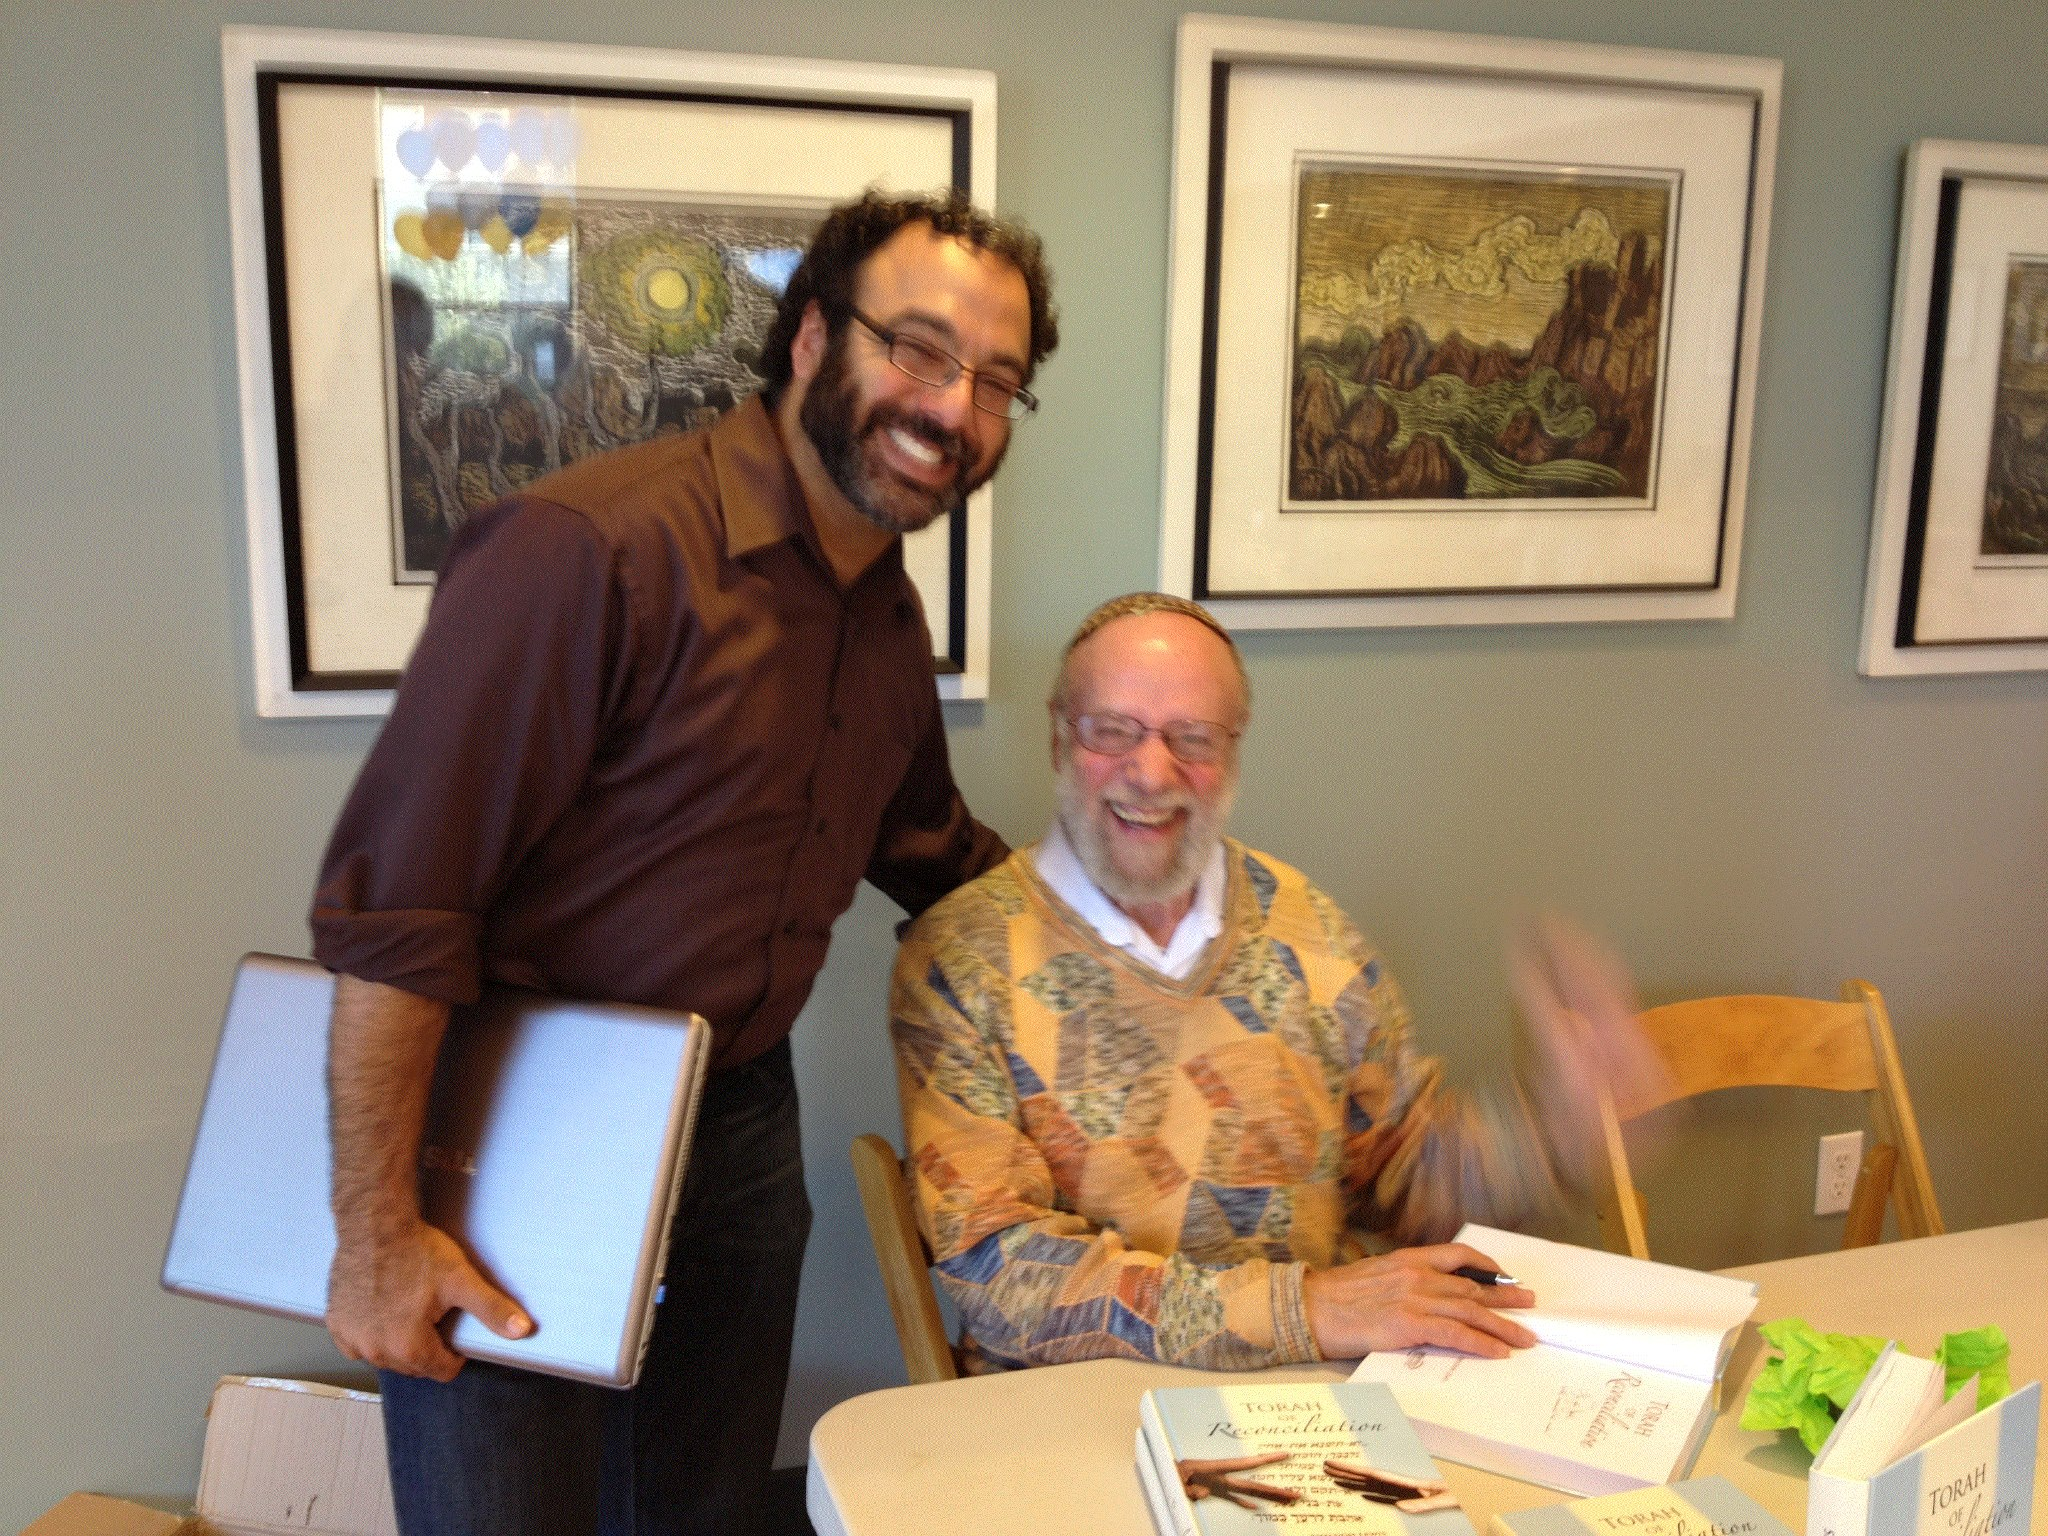 Thanks Rabbi Rosalind Glazer for the sweet photo of me and Rabbi Sheldon Lewis from his wonderful teaching at Congregation Netivot Shalom last week! Don't miss his teaching this Sunday November 11, 3-00pm at Afikomen Judaica! — with Sheldon Lewis